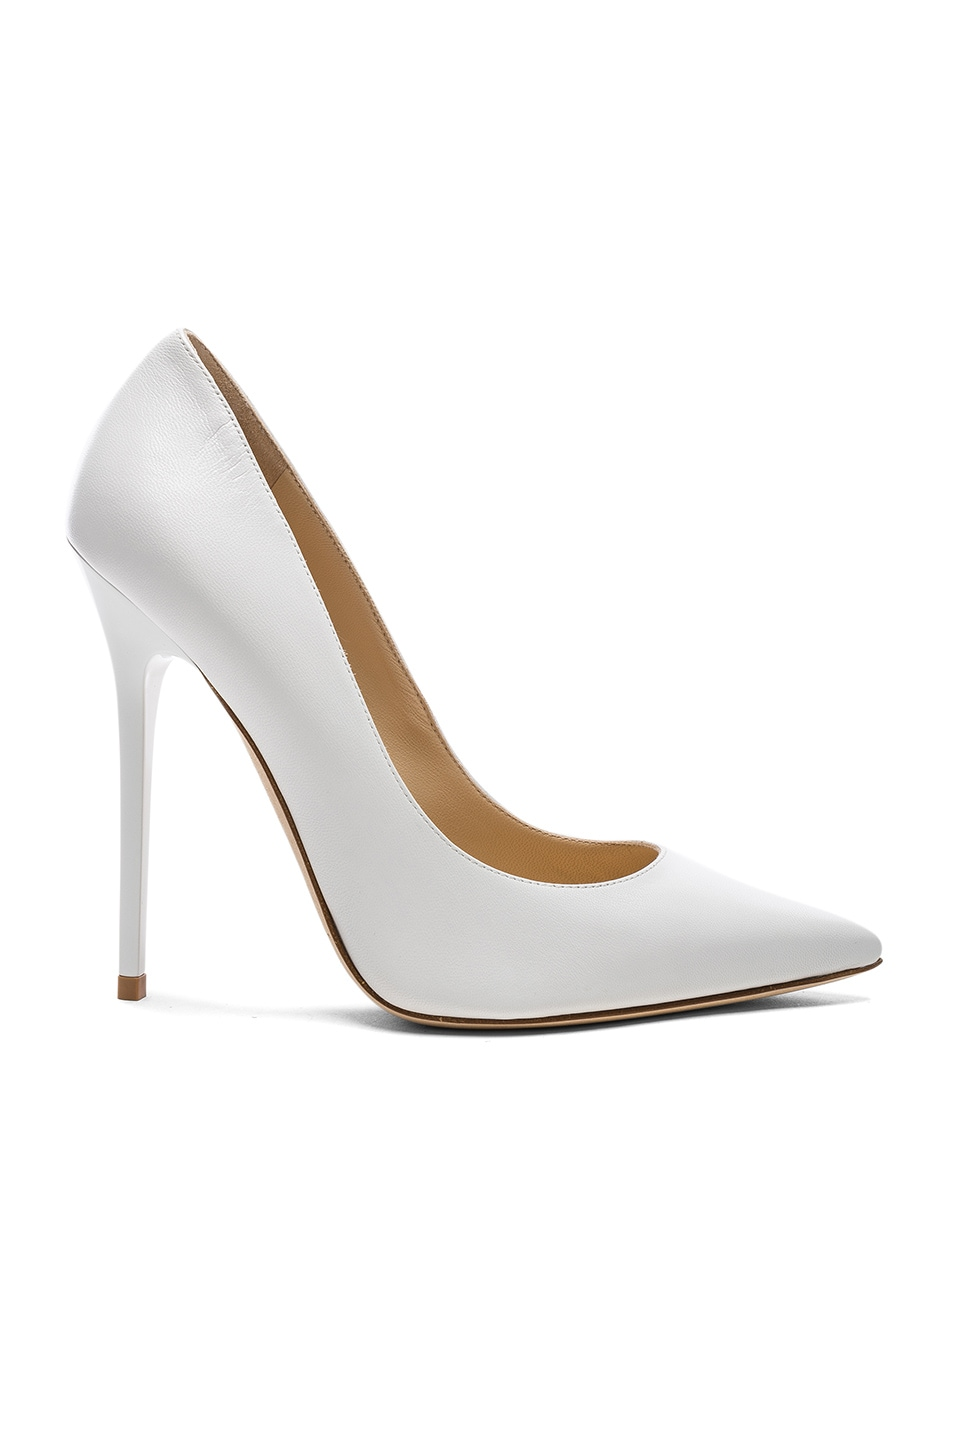 Image 1 of Jimmy Choo Leather Anouk Heels in Optic White